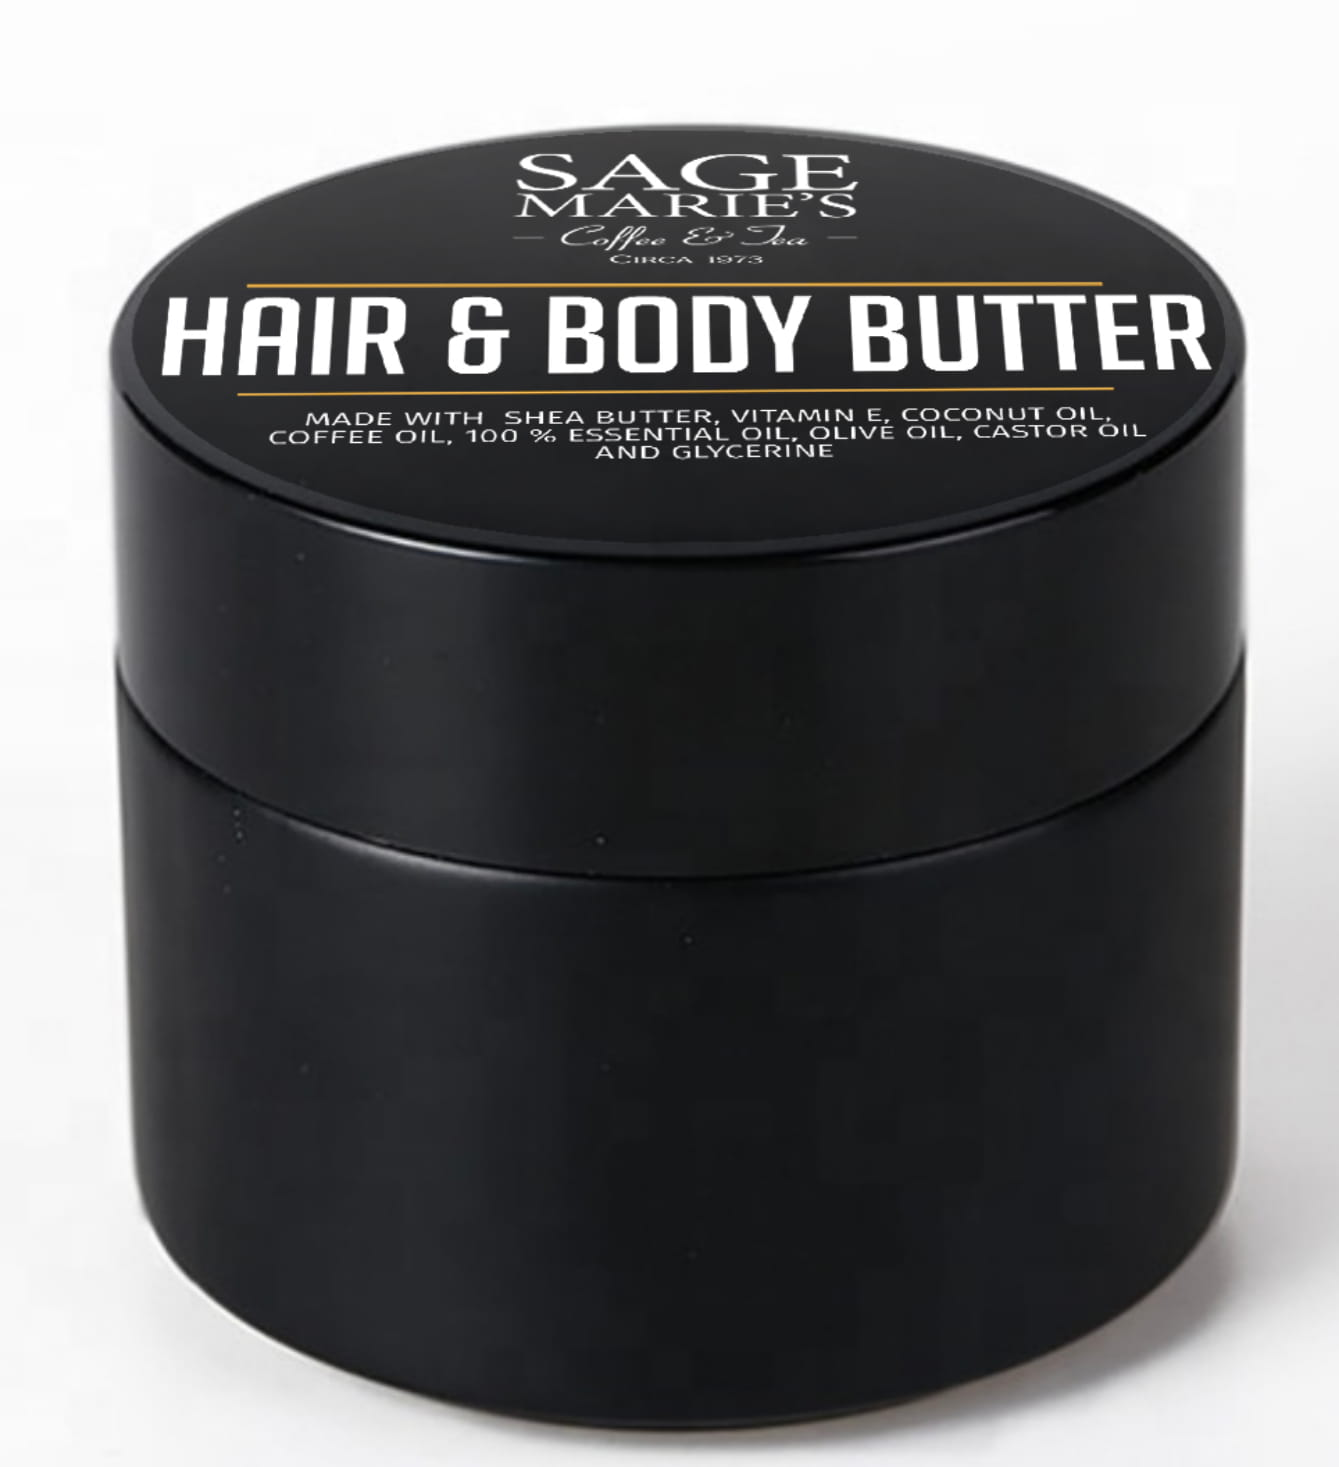 Hair & Body Shea Butter